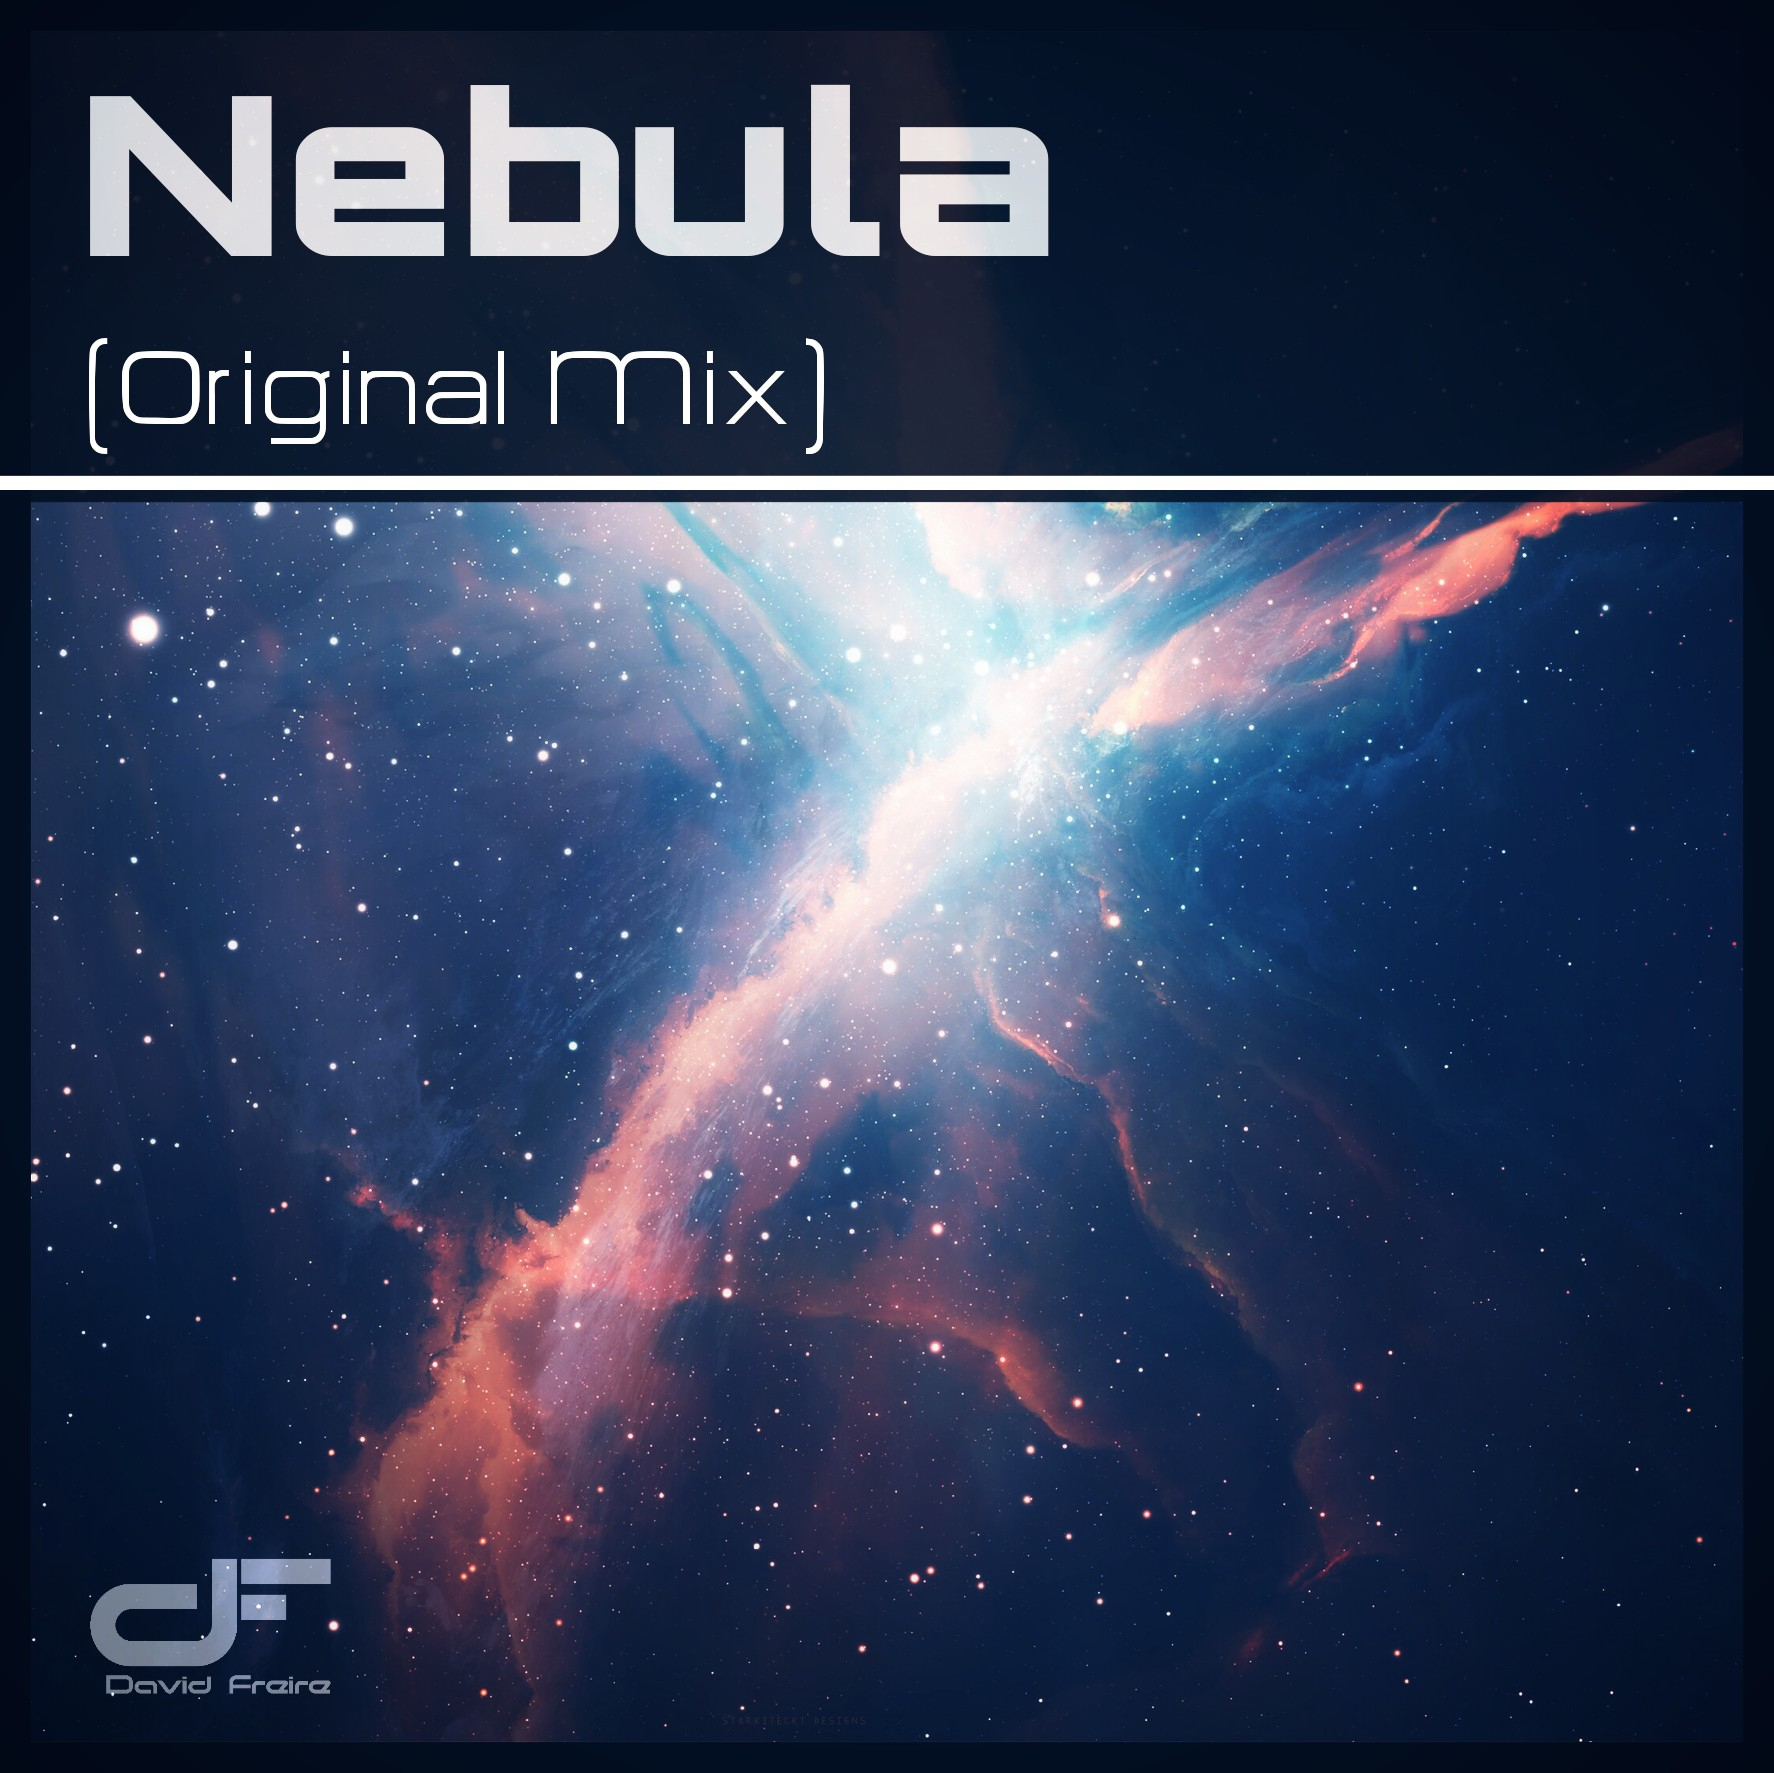 David Freire - Nebula (Original Mix)